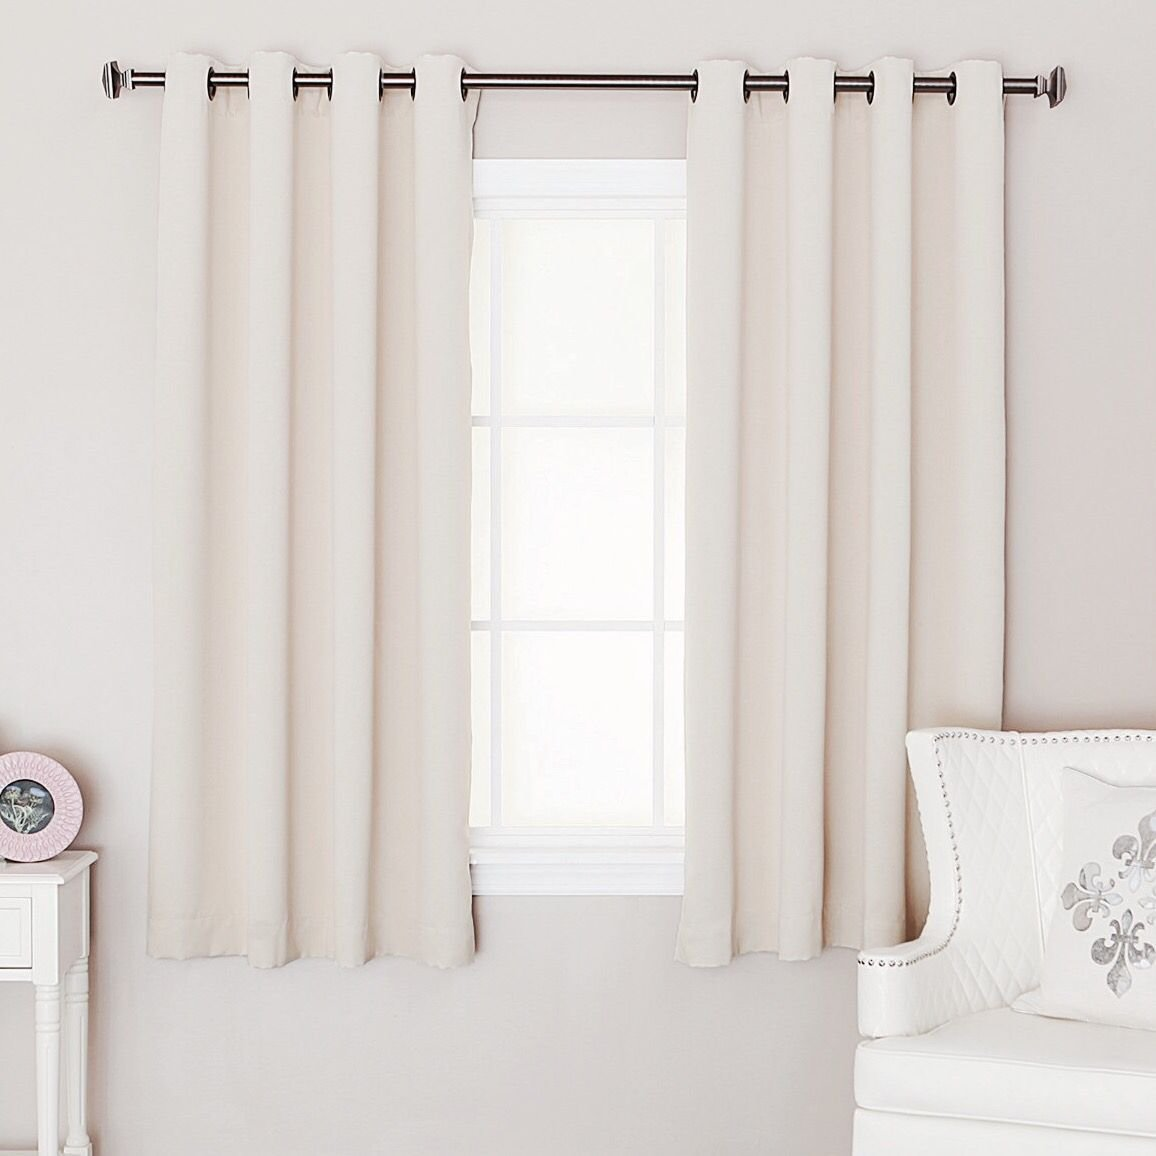 Best Short Curtains Square Bedroom Window Mid Century Modern Nursery Small Window Curtains With Pictures